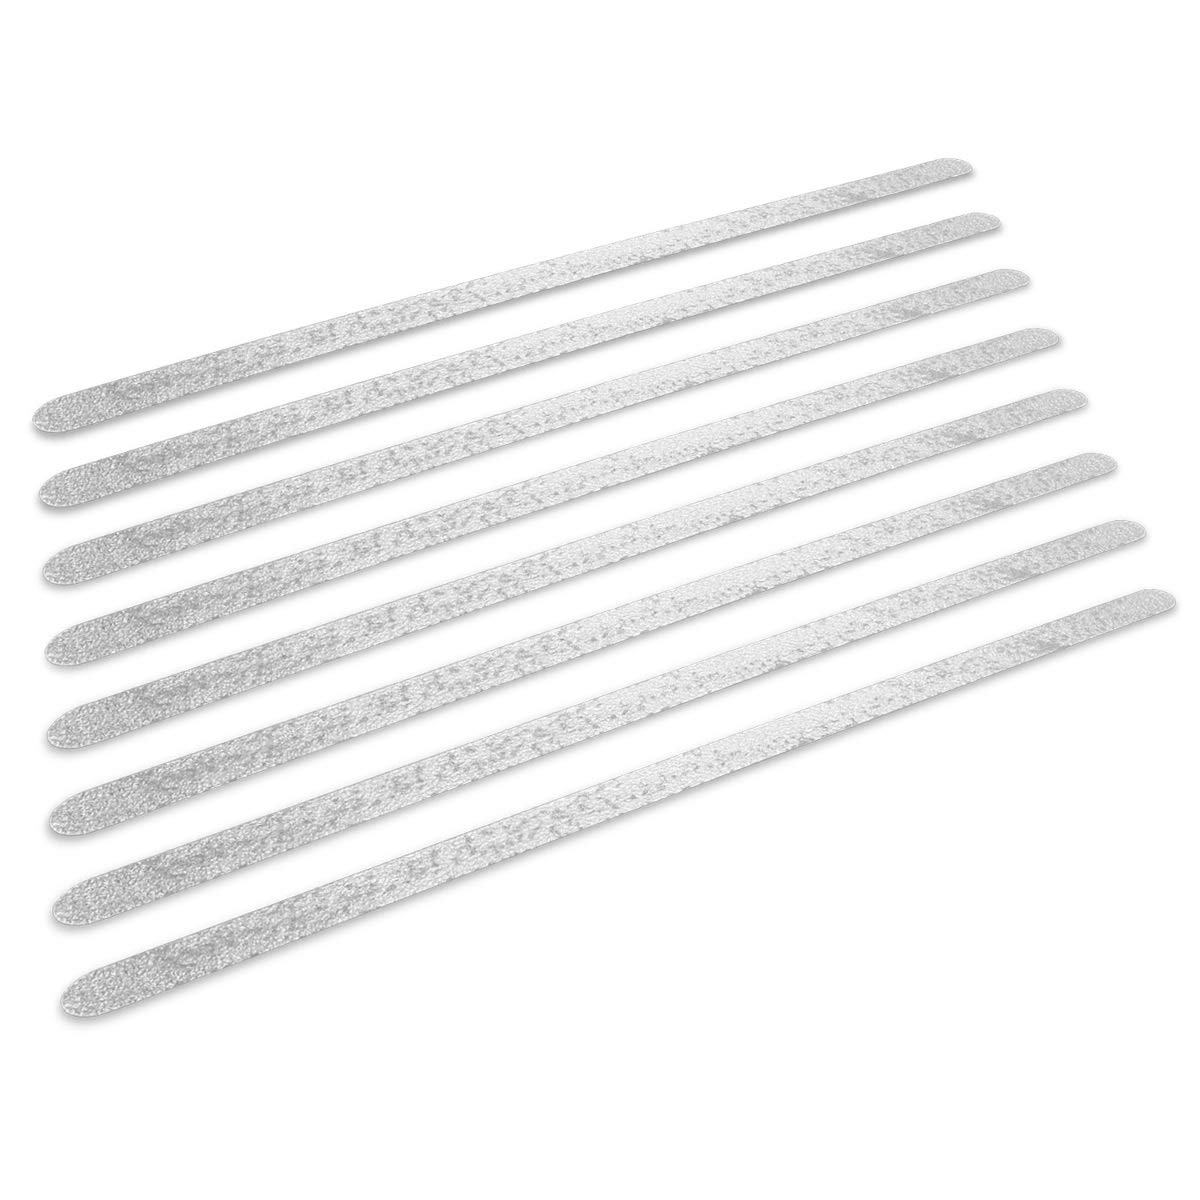 Navaris Non Slip Bathtub Strips - Set of 8, Transparent - Anti-Slip Adhesive Safety Sticker Grip Tape Decal Appliques for Bath, Shower, Stairs, Tub KW-Commerce 45671.02_m001259